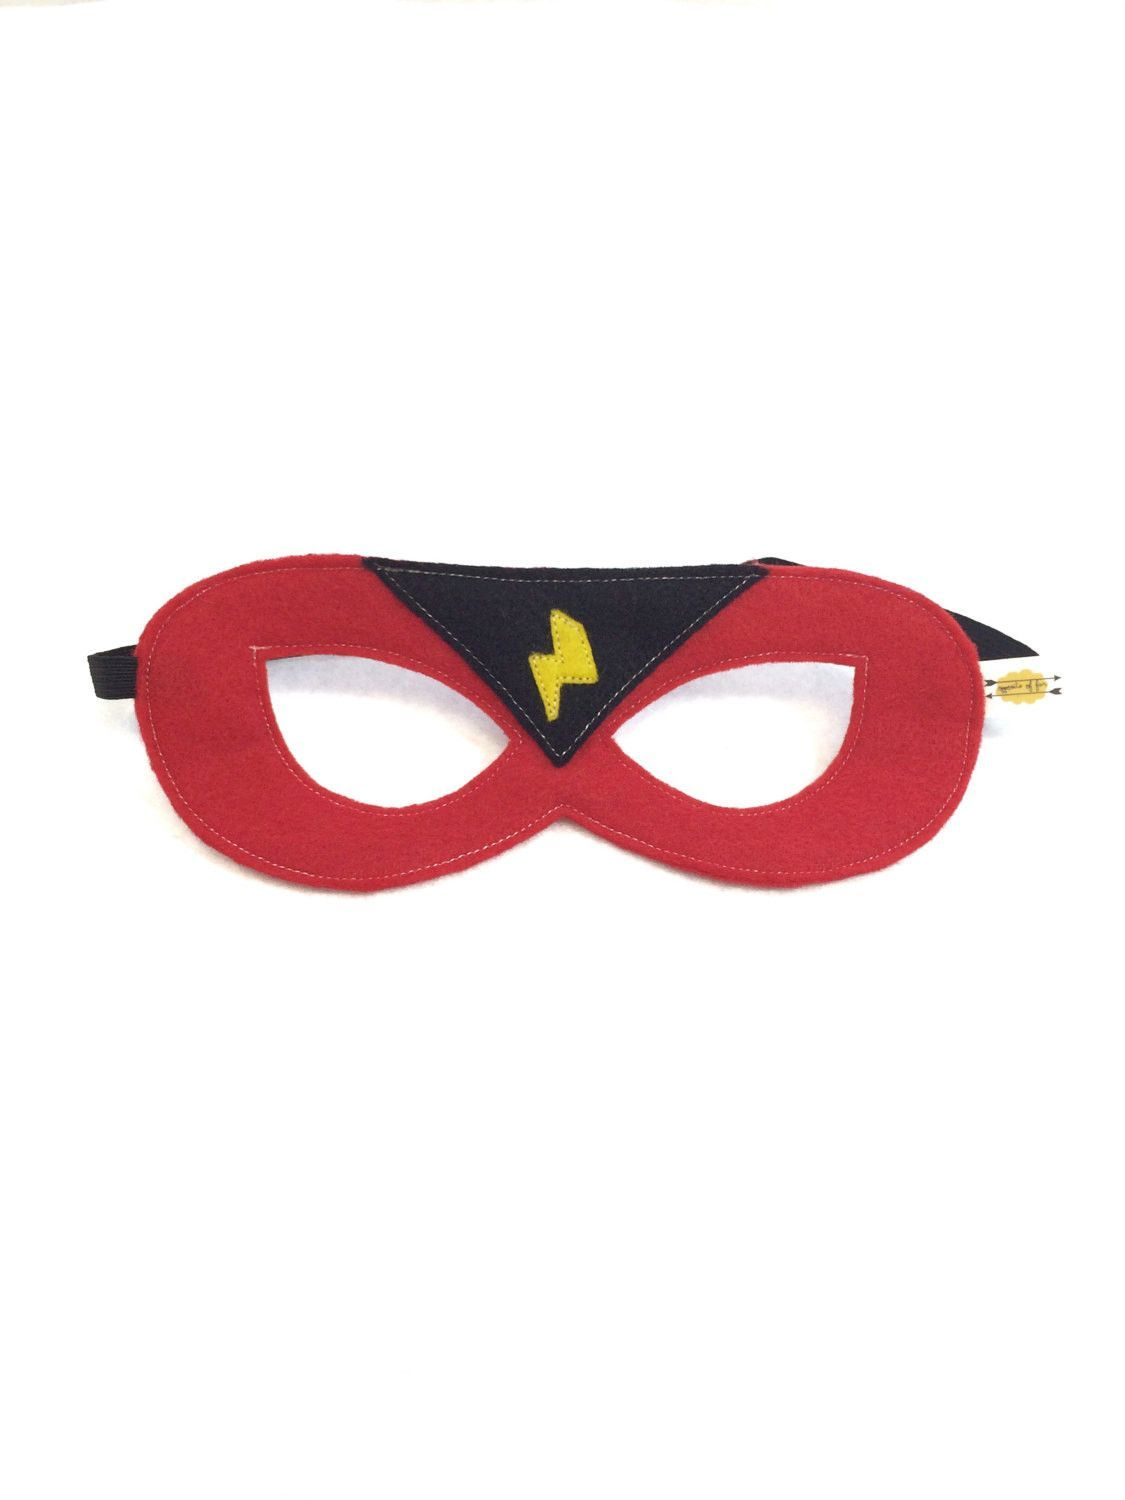 Red superhero mask with black triangle and yellow lightning bolt red superhero mask with black triangle and yellow lightning bolt buycottarizona Image collections